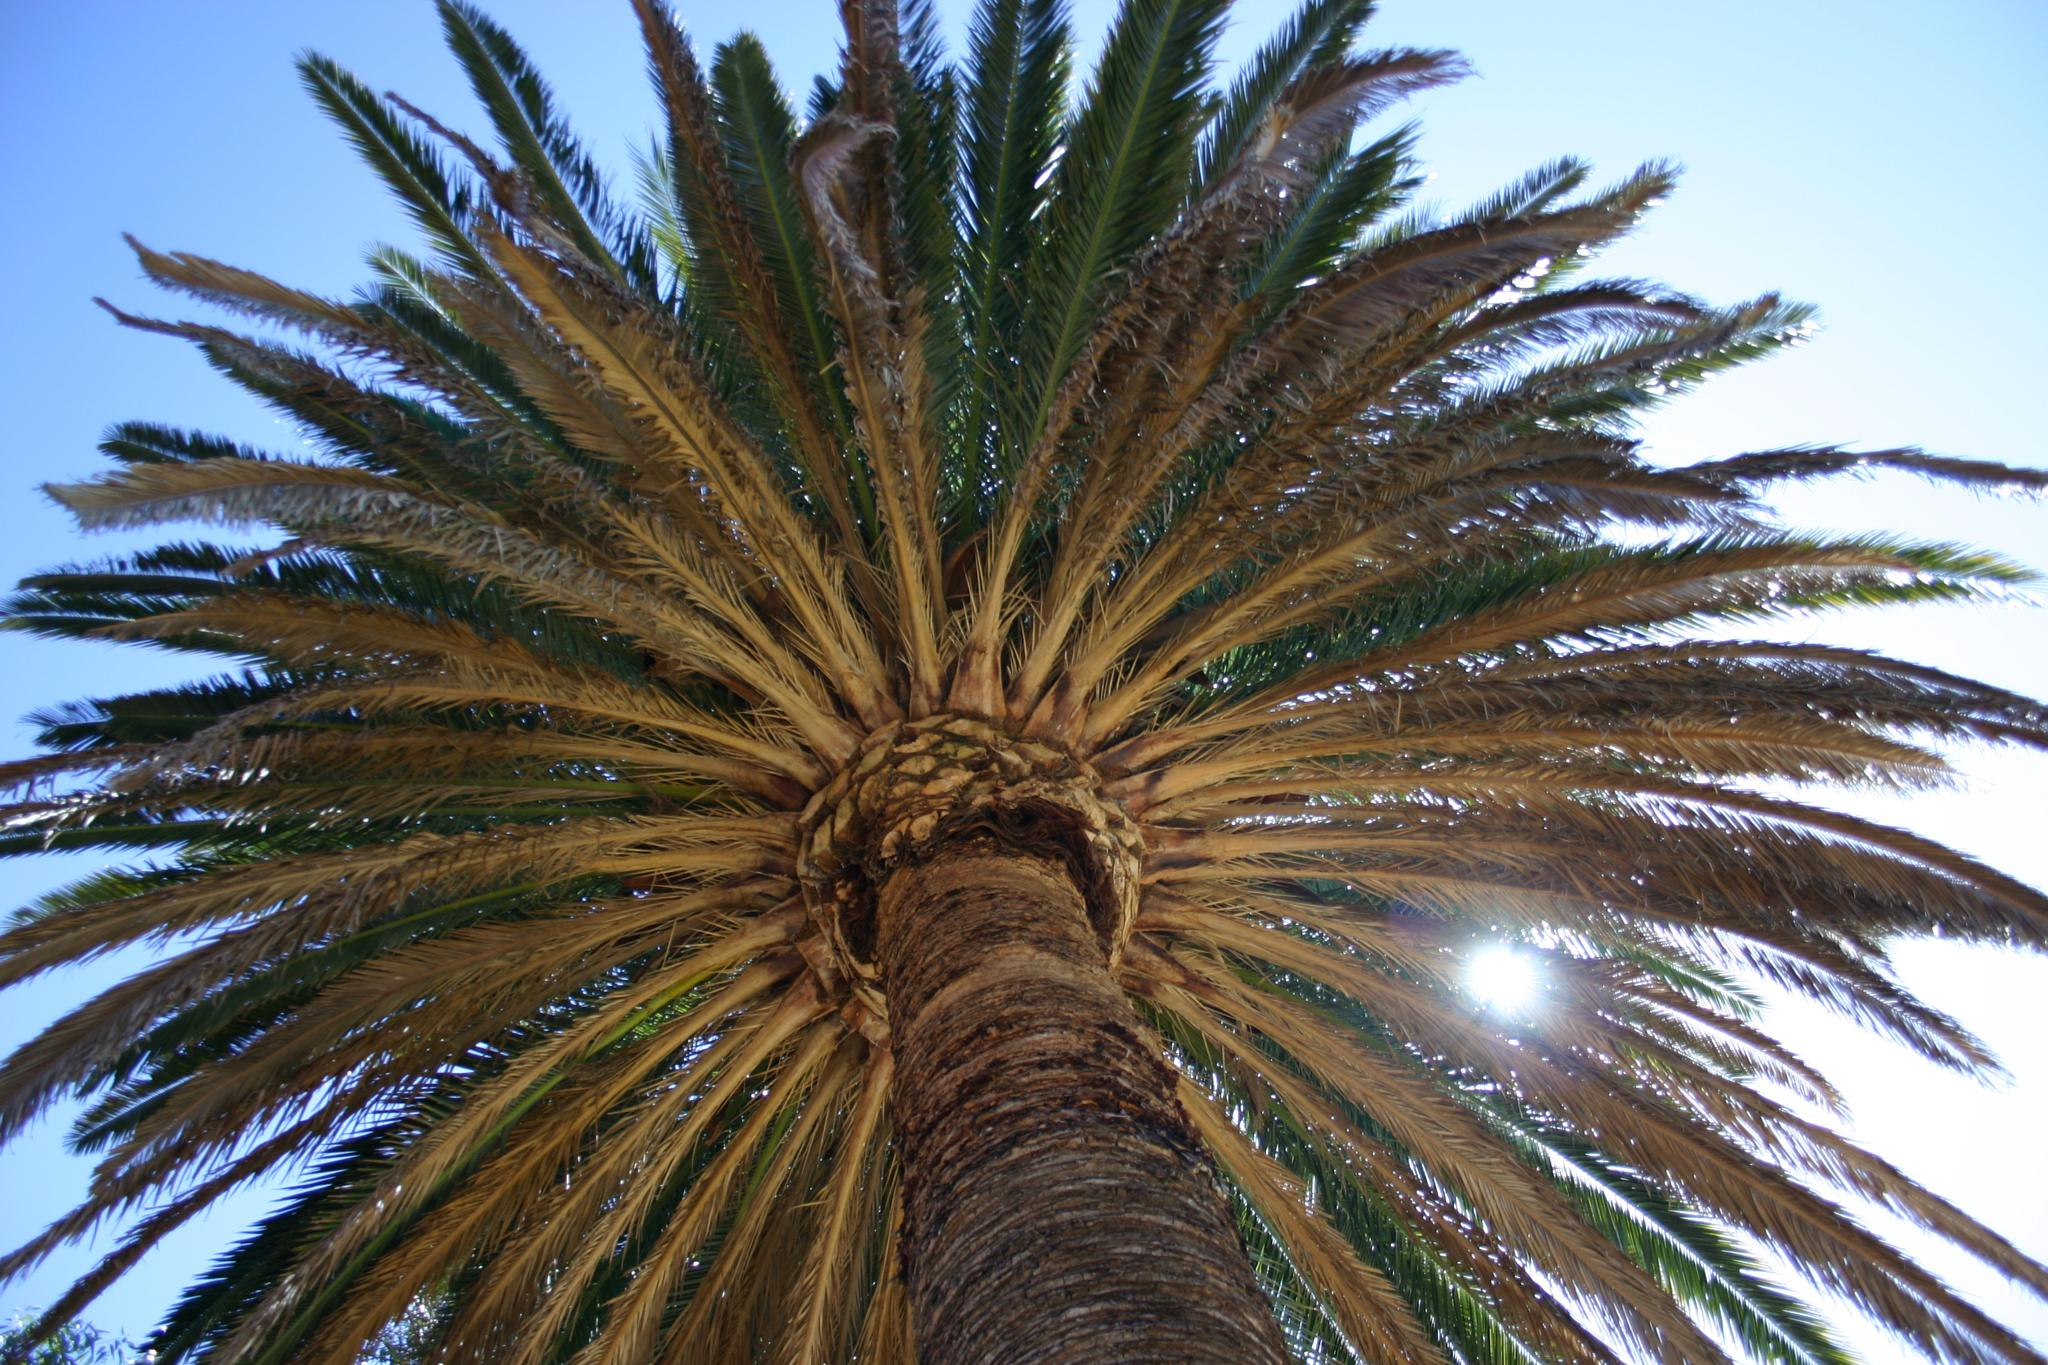 Sun Through the Palm Tree by Fraser McCulloch